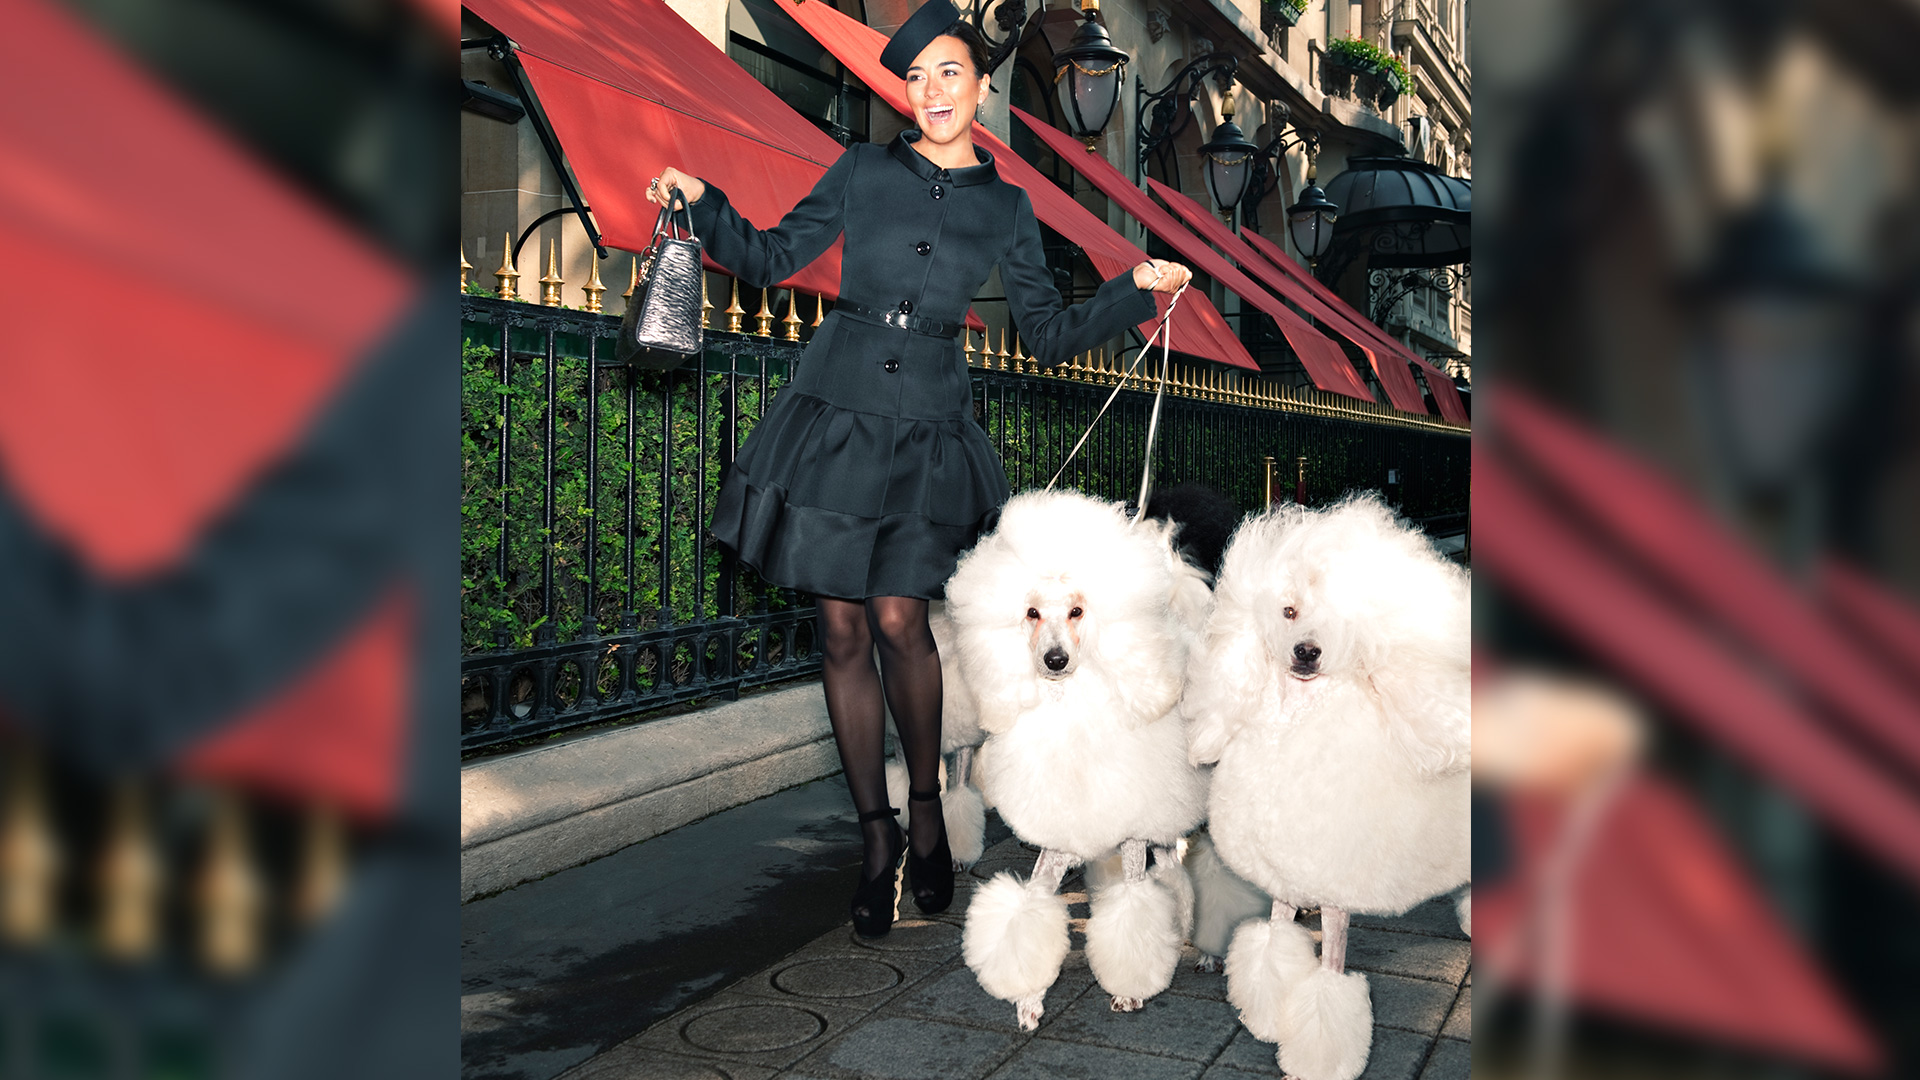 Poodles in Paris